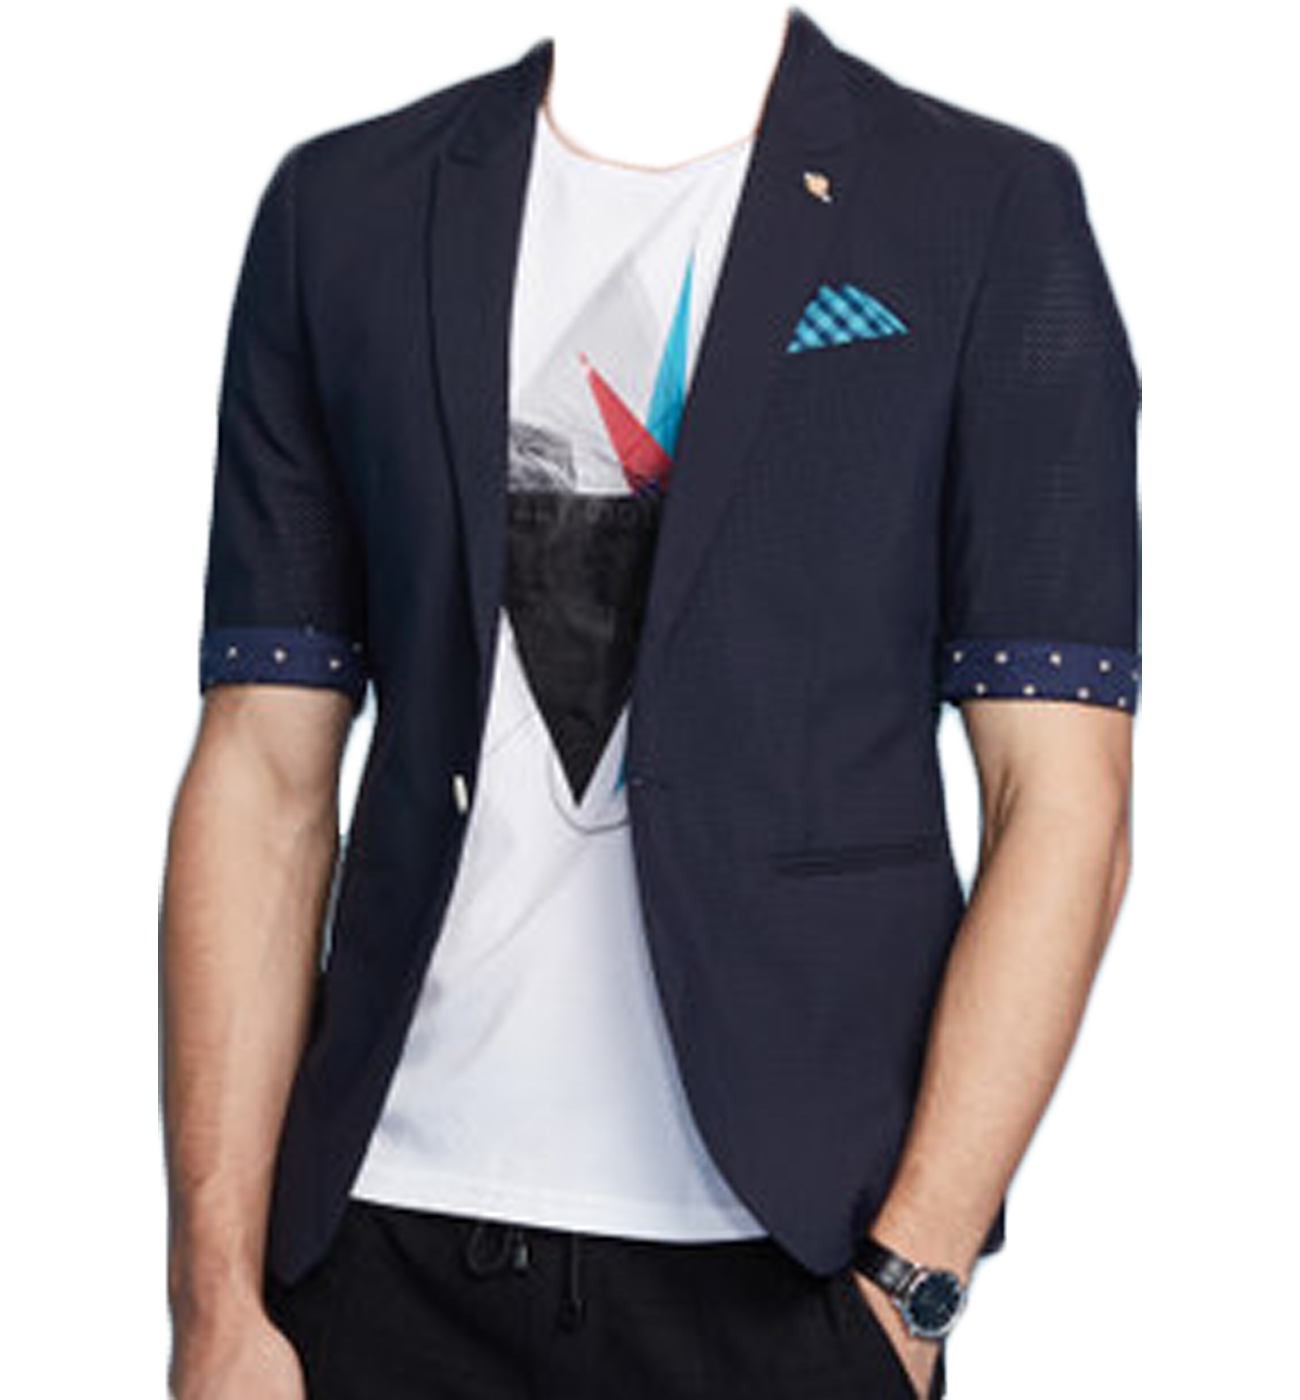 Mens Fashion Outerwear And Savvy Apparel | PILAEO